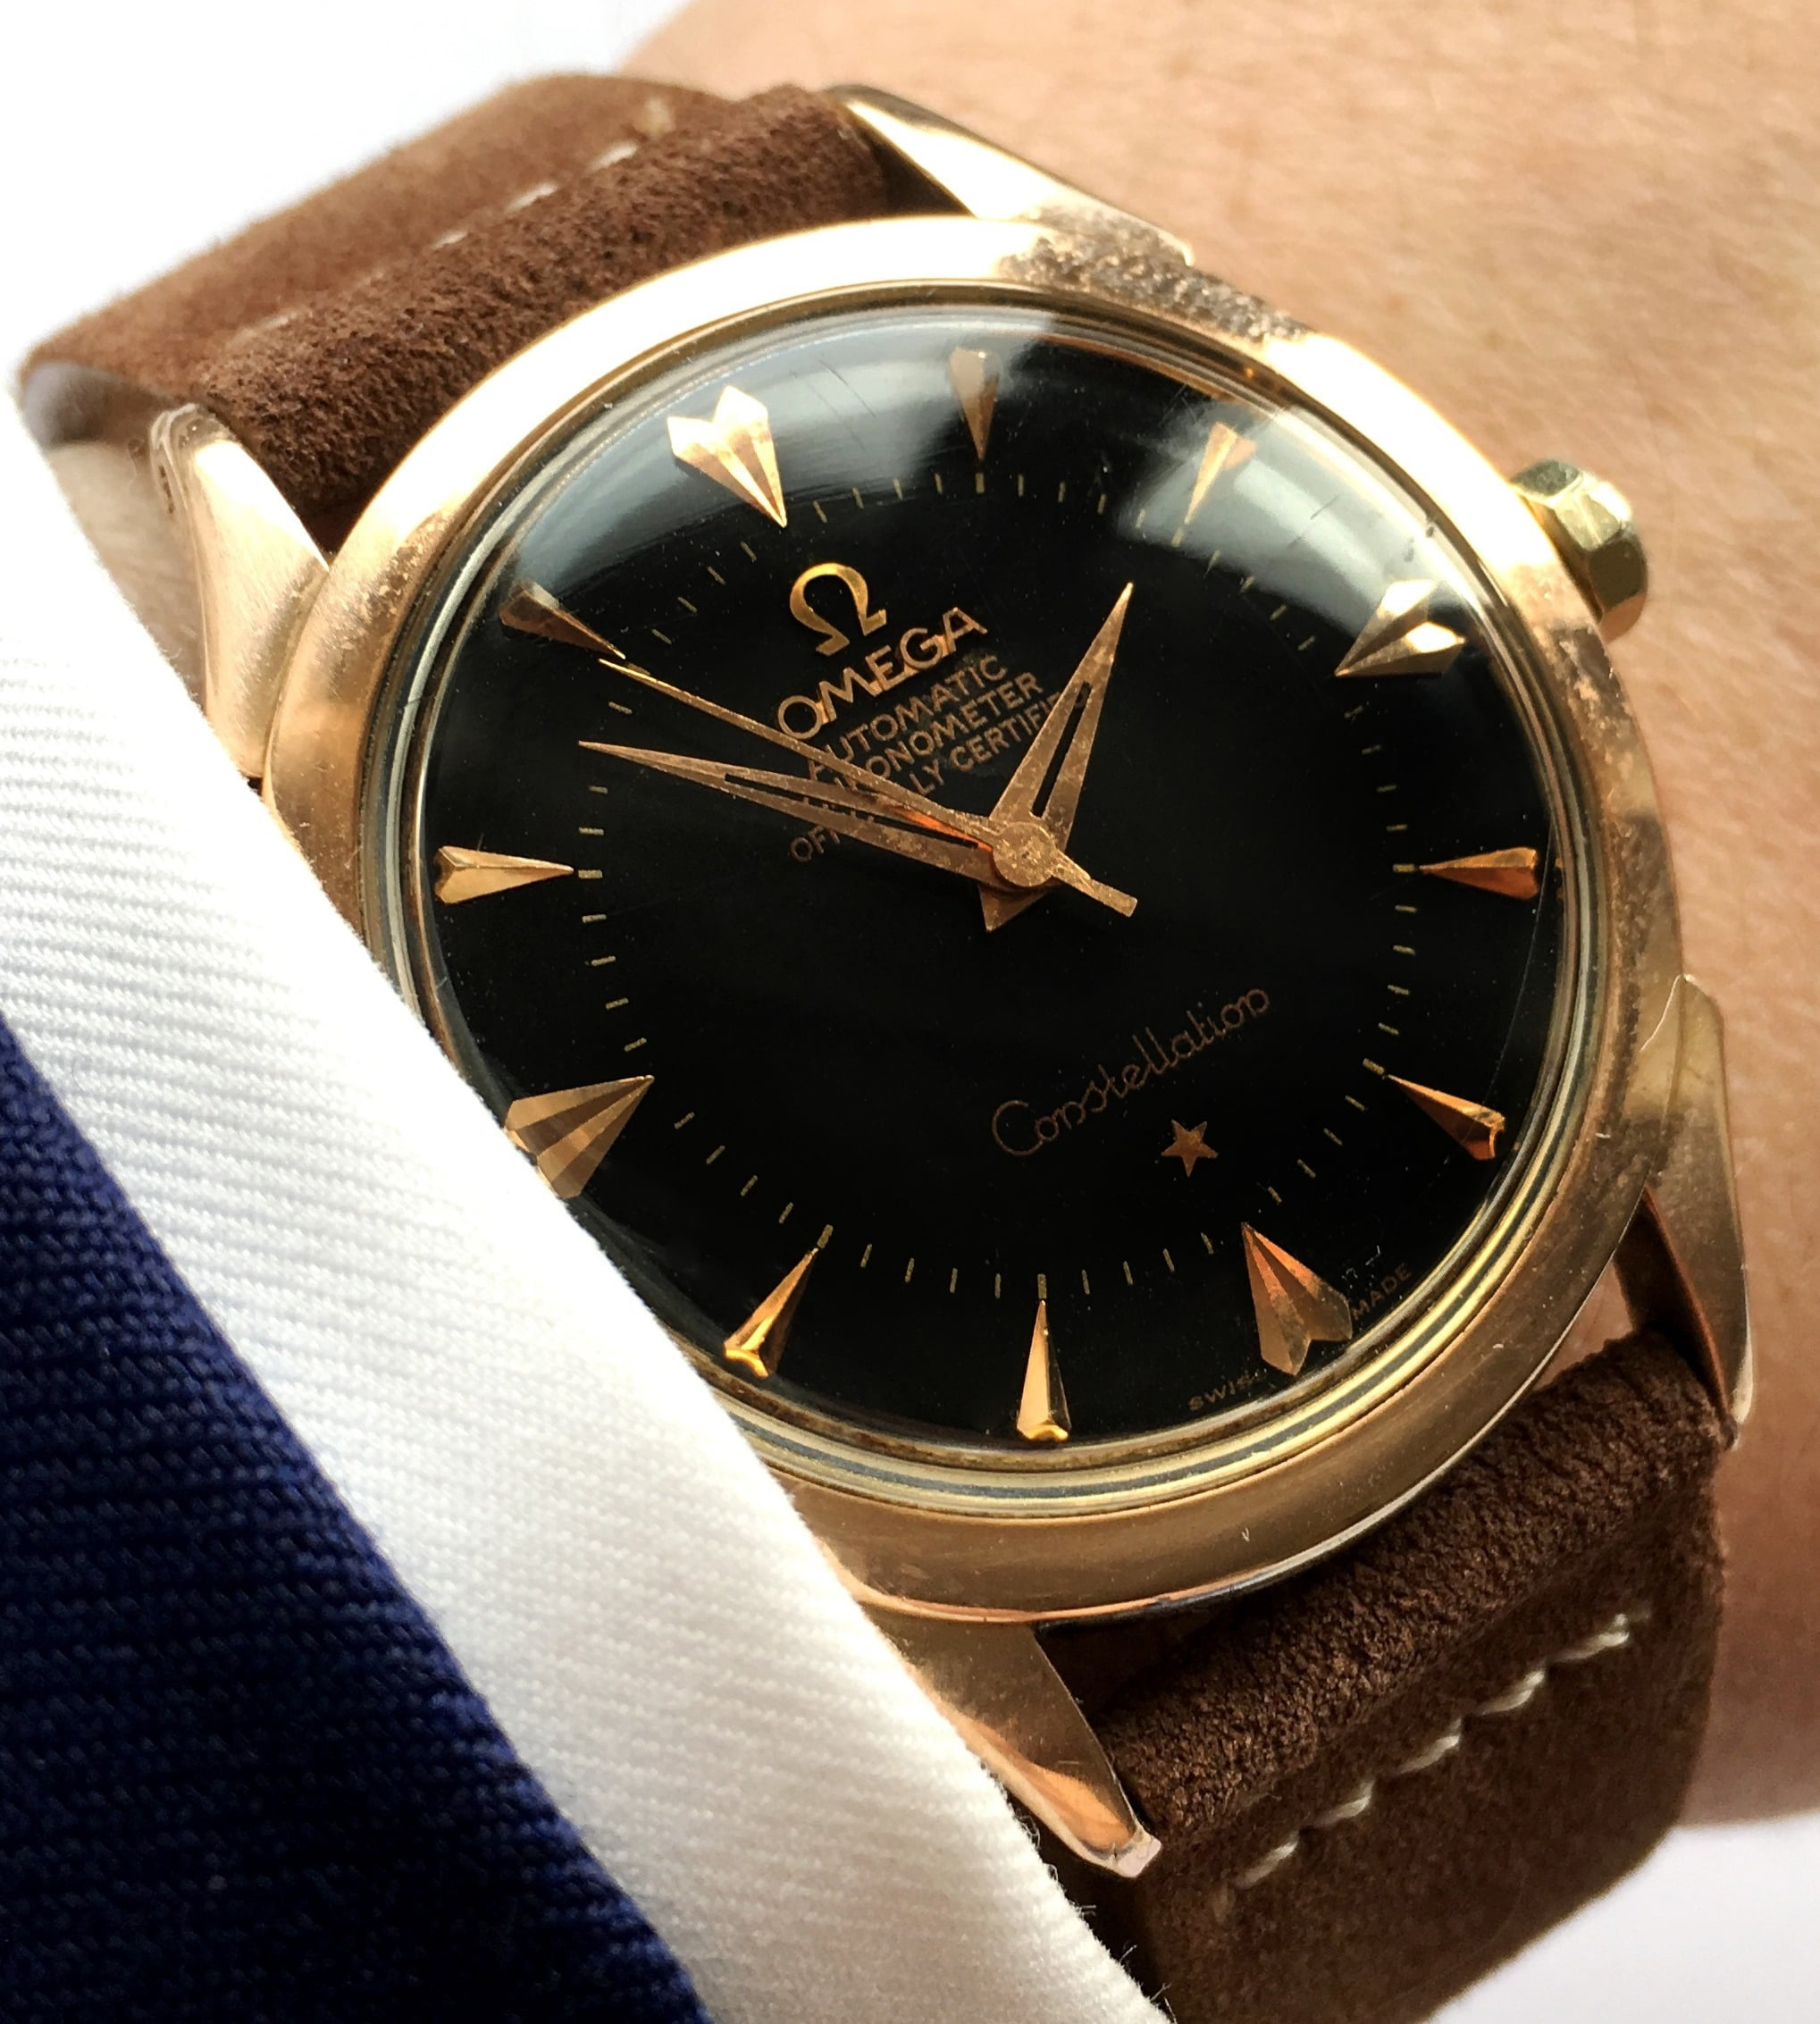 Immaculate red gold plated Omega Constellation